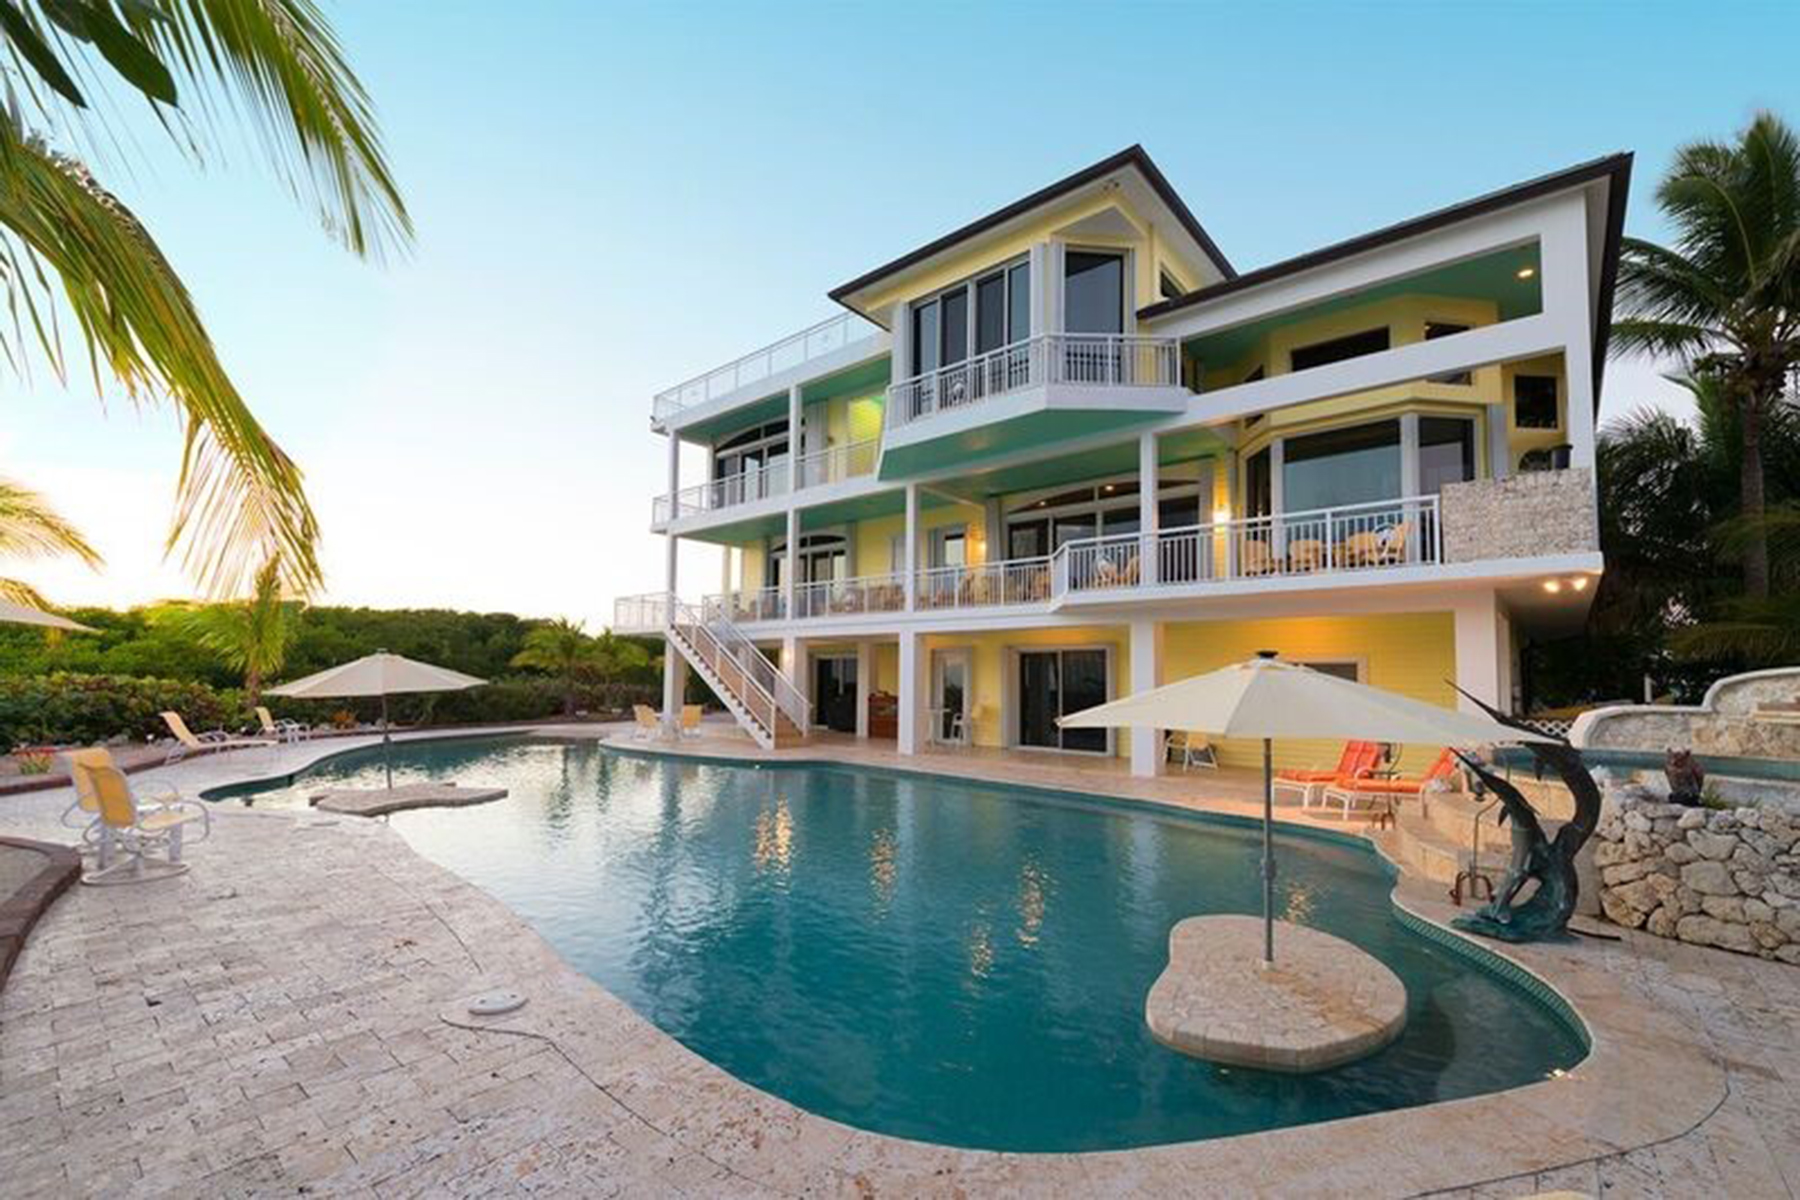 Single Family Homes for Active at MANDALAY - KEY LARGO 97251 Overseas Highway Key Largo, Florida 33037 United States